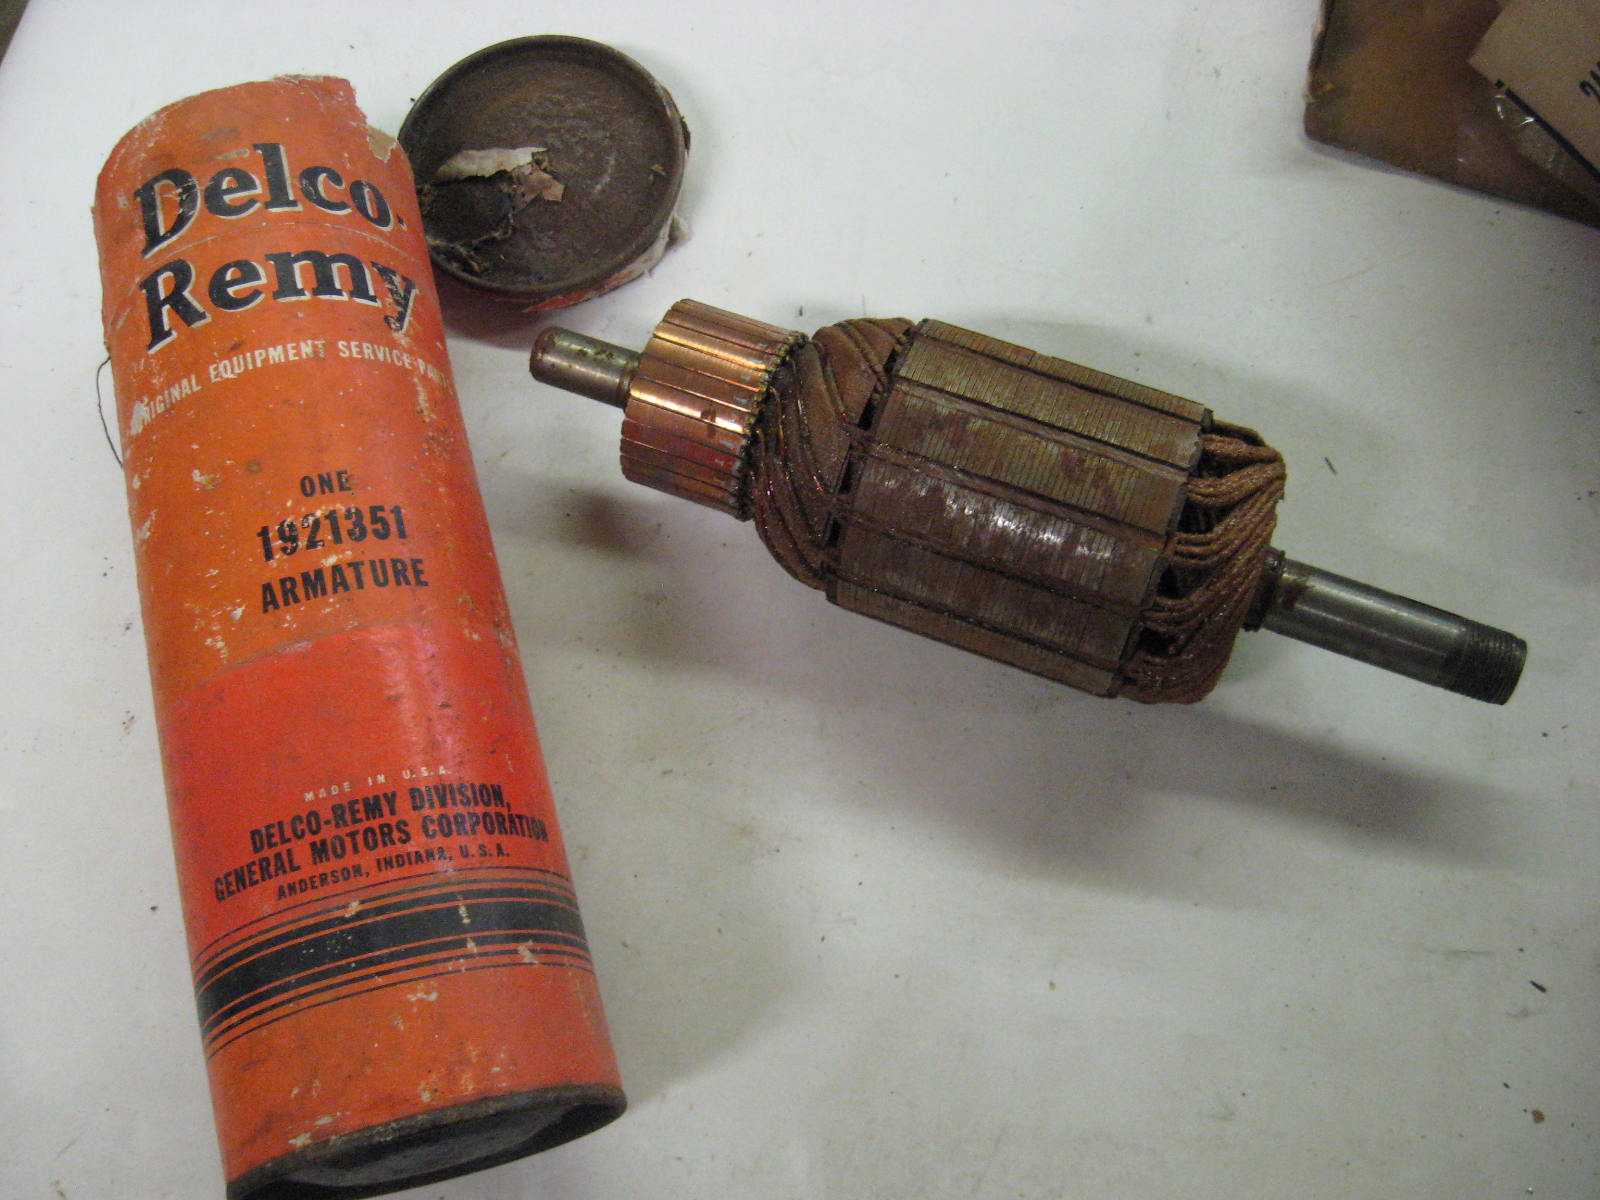 1952 Chevrolet & GMC Internatinal generator armature nos 1921351 (a 1921351)